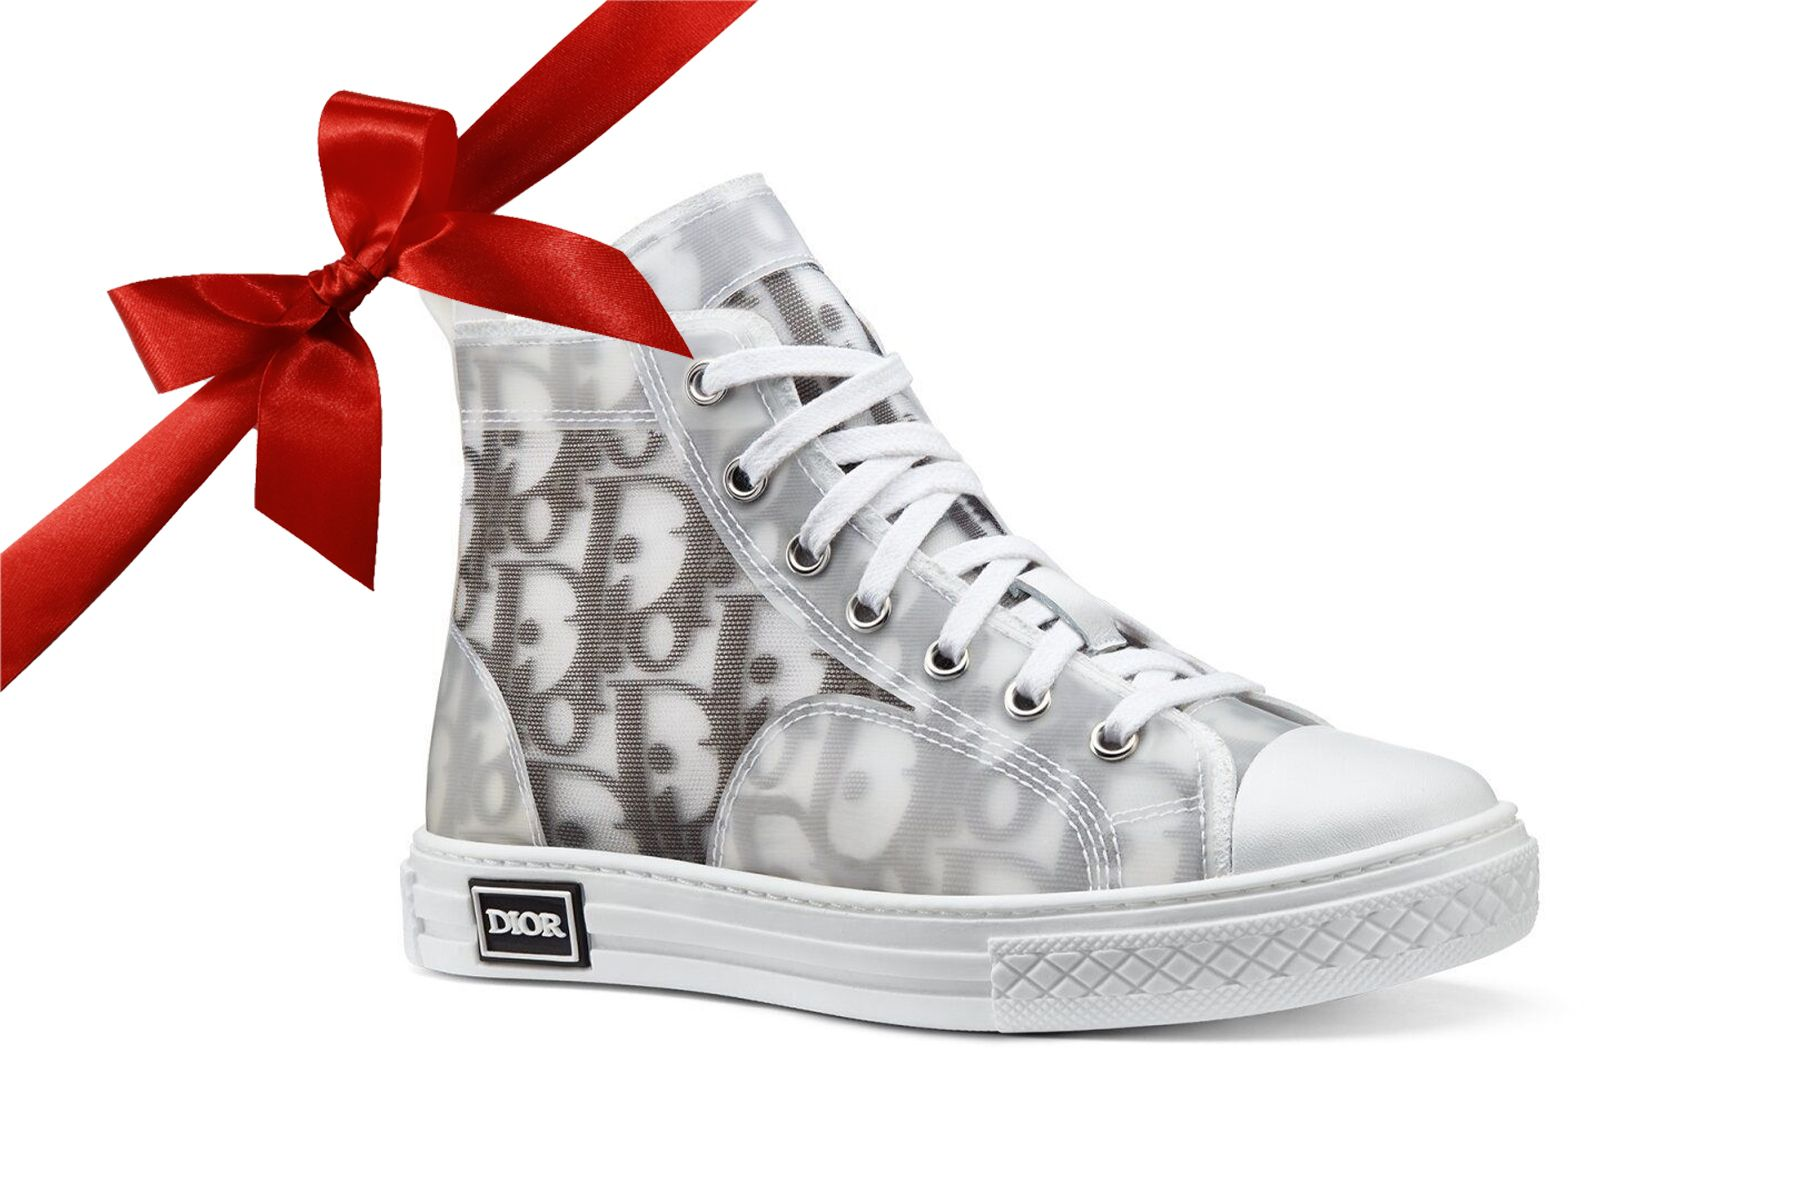 Christmas Gift Guide 2020: The Best Luxury Gifts For Kids